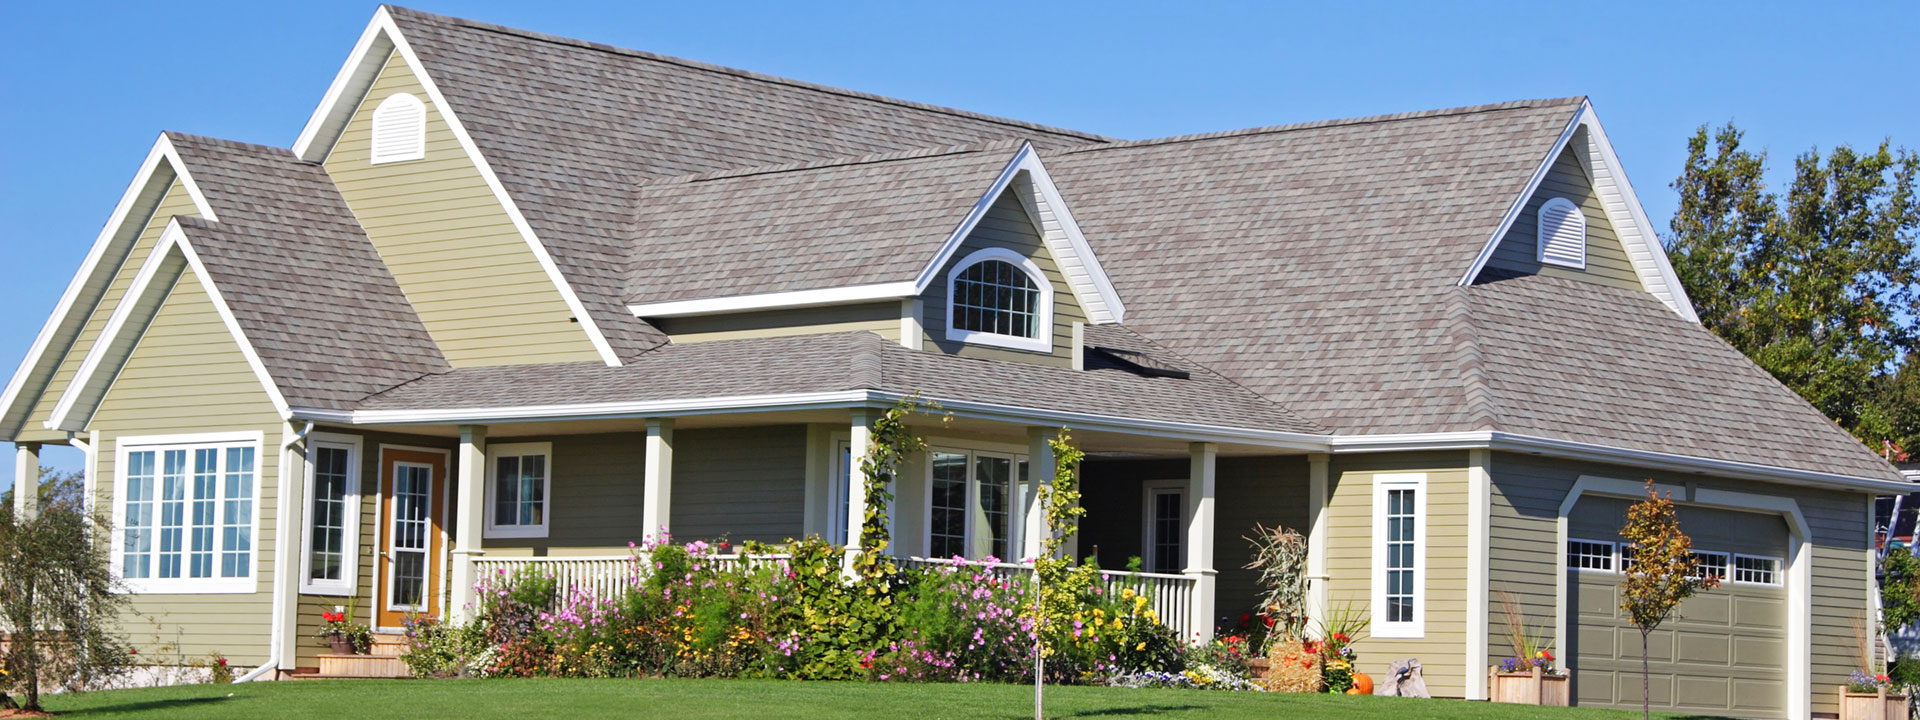 buying a home in la grande oregon